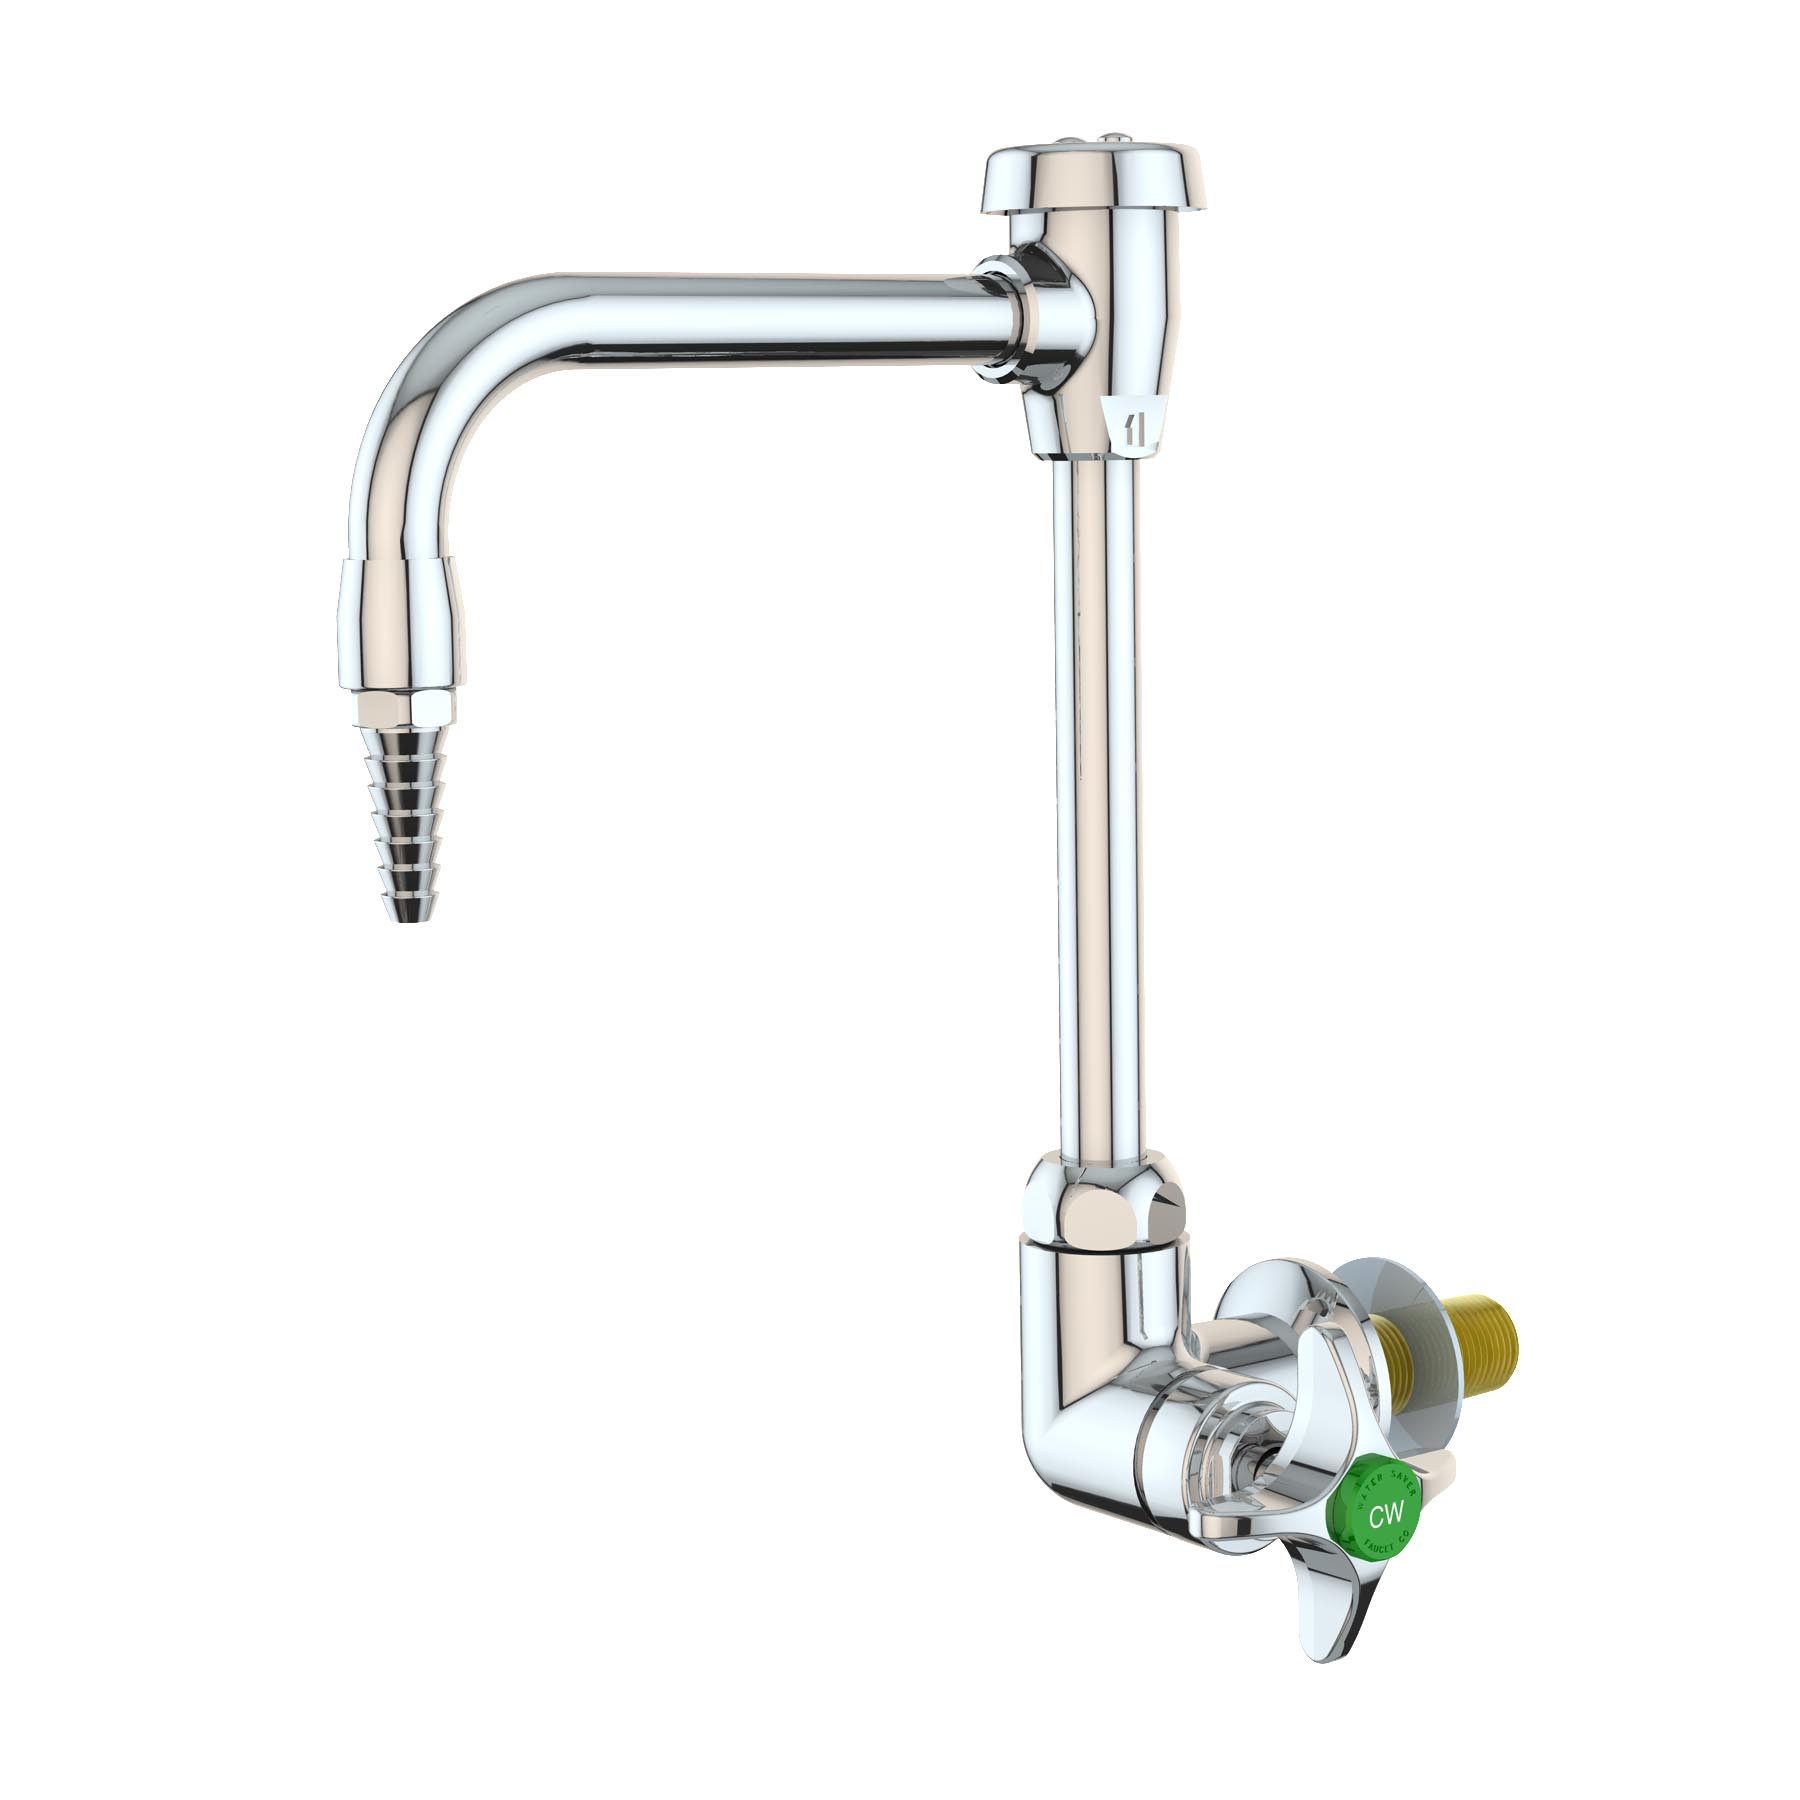 L2714vb Wsa Watersaver Faucet Co